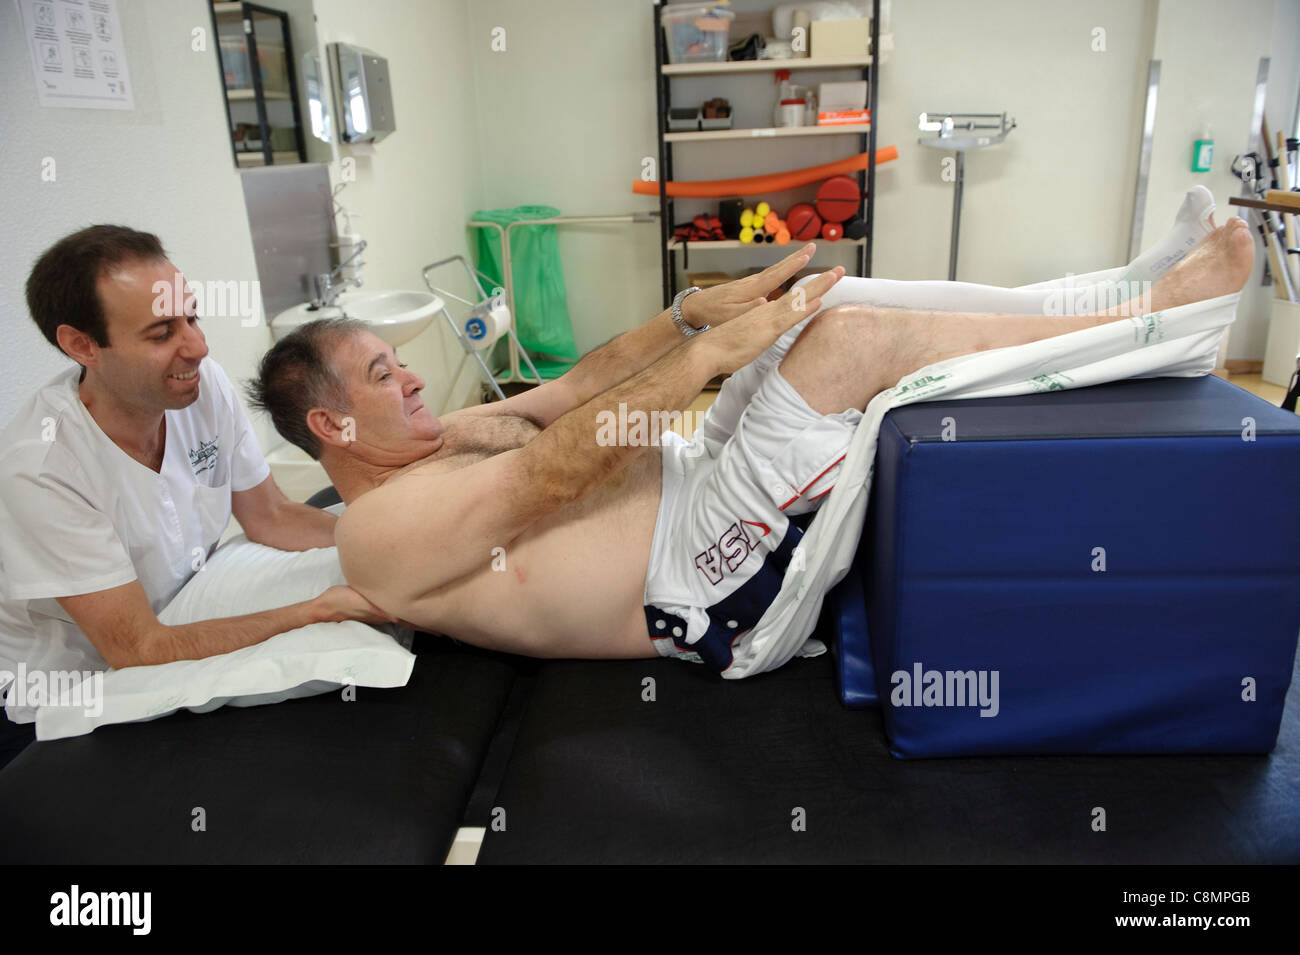 Physiotherapist helping a patient do an exercise - Stock Image